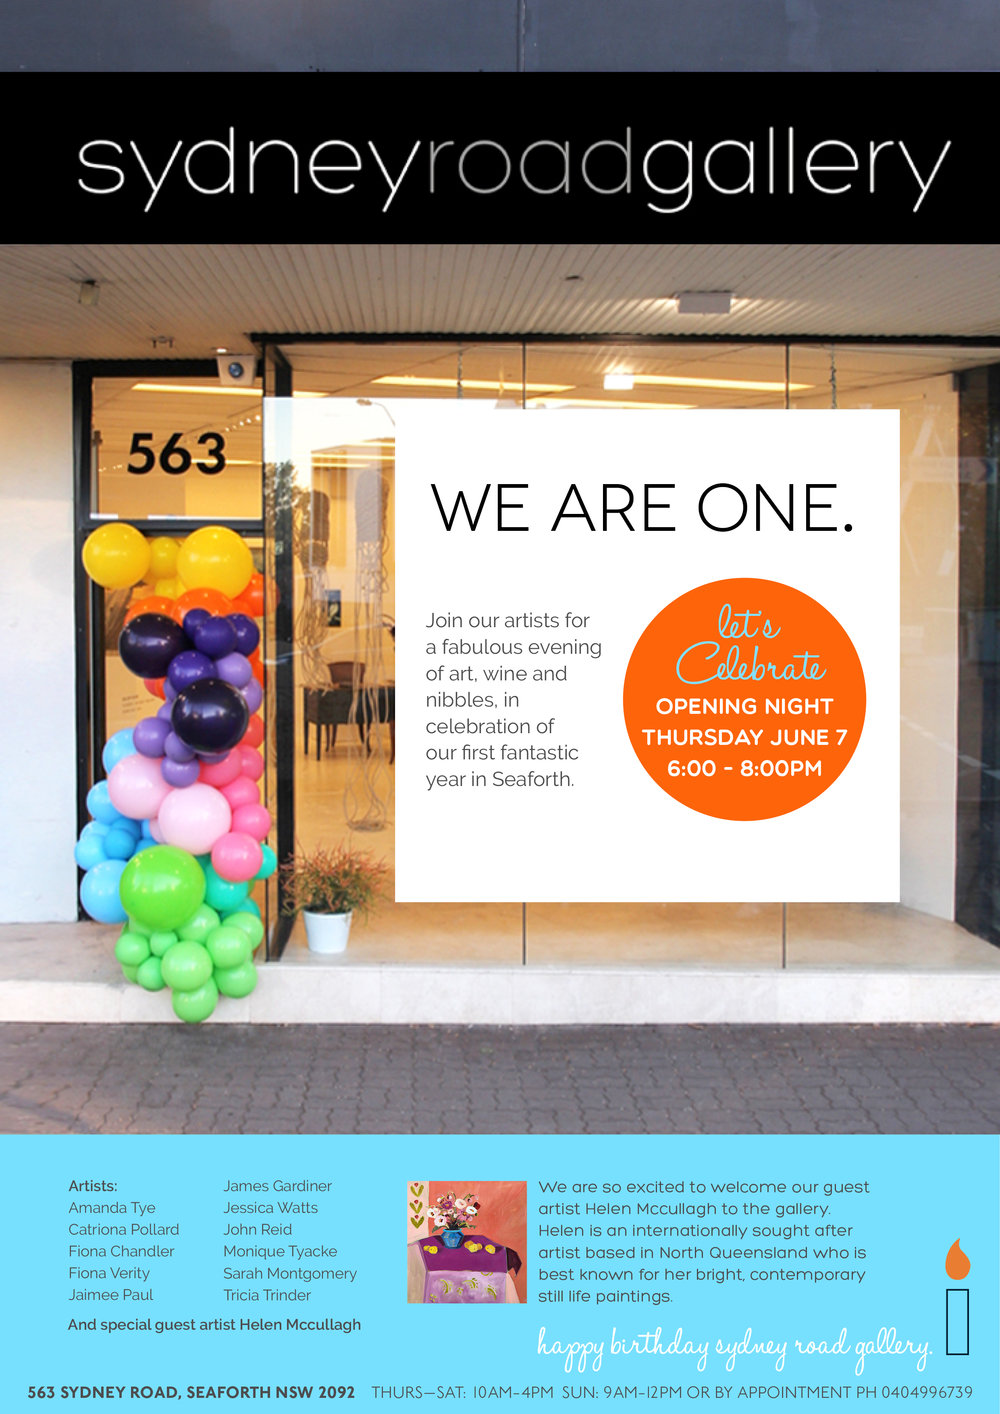 WE ARE ONE! - Sydney Road Gallery turns one and will like to invite you to join the celebrations!JUNE 7TH - JULY 1ST